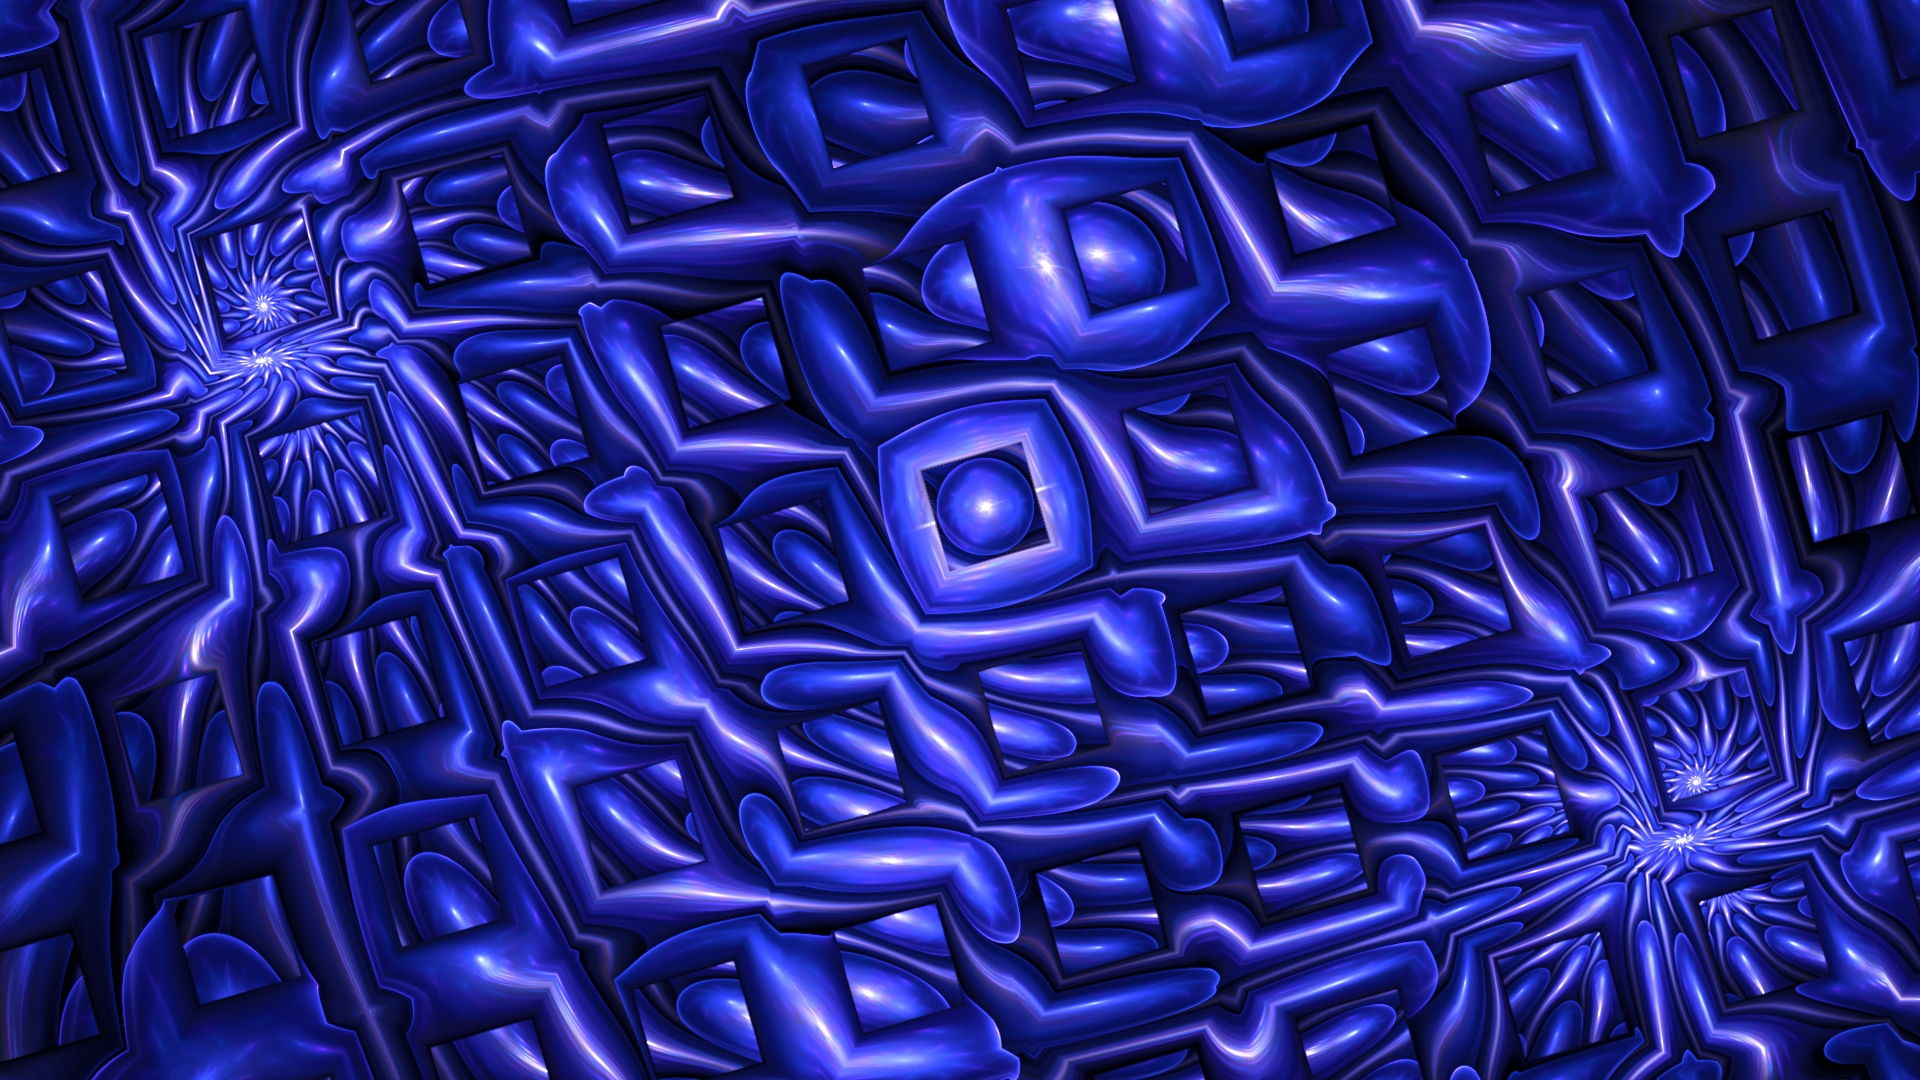 Twitter Backgrounds Degrees Borders Blue Gallery Brown wallpapers HD 1920x1080